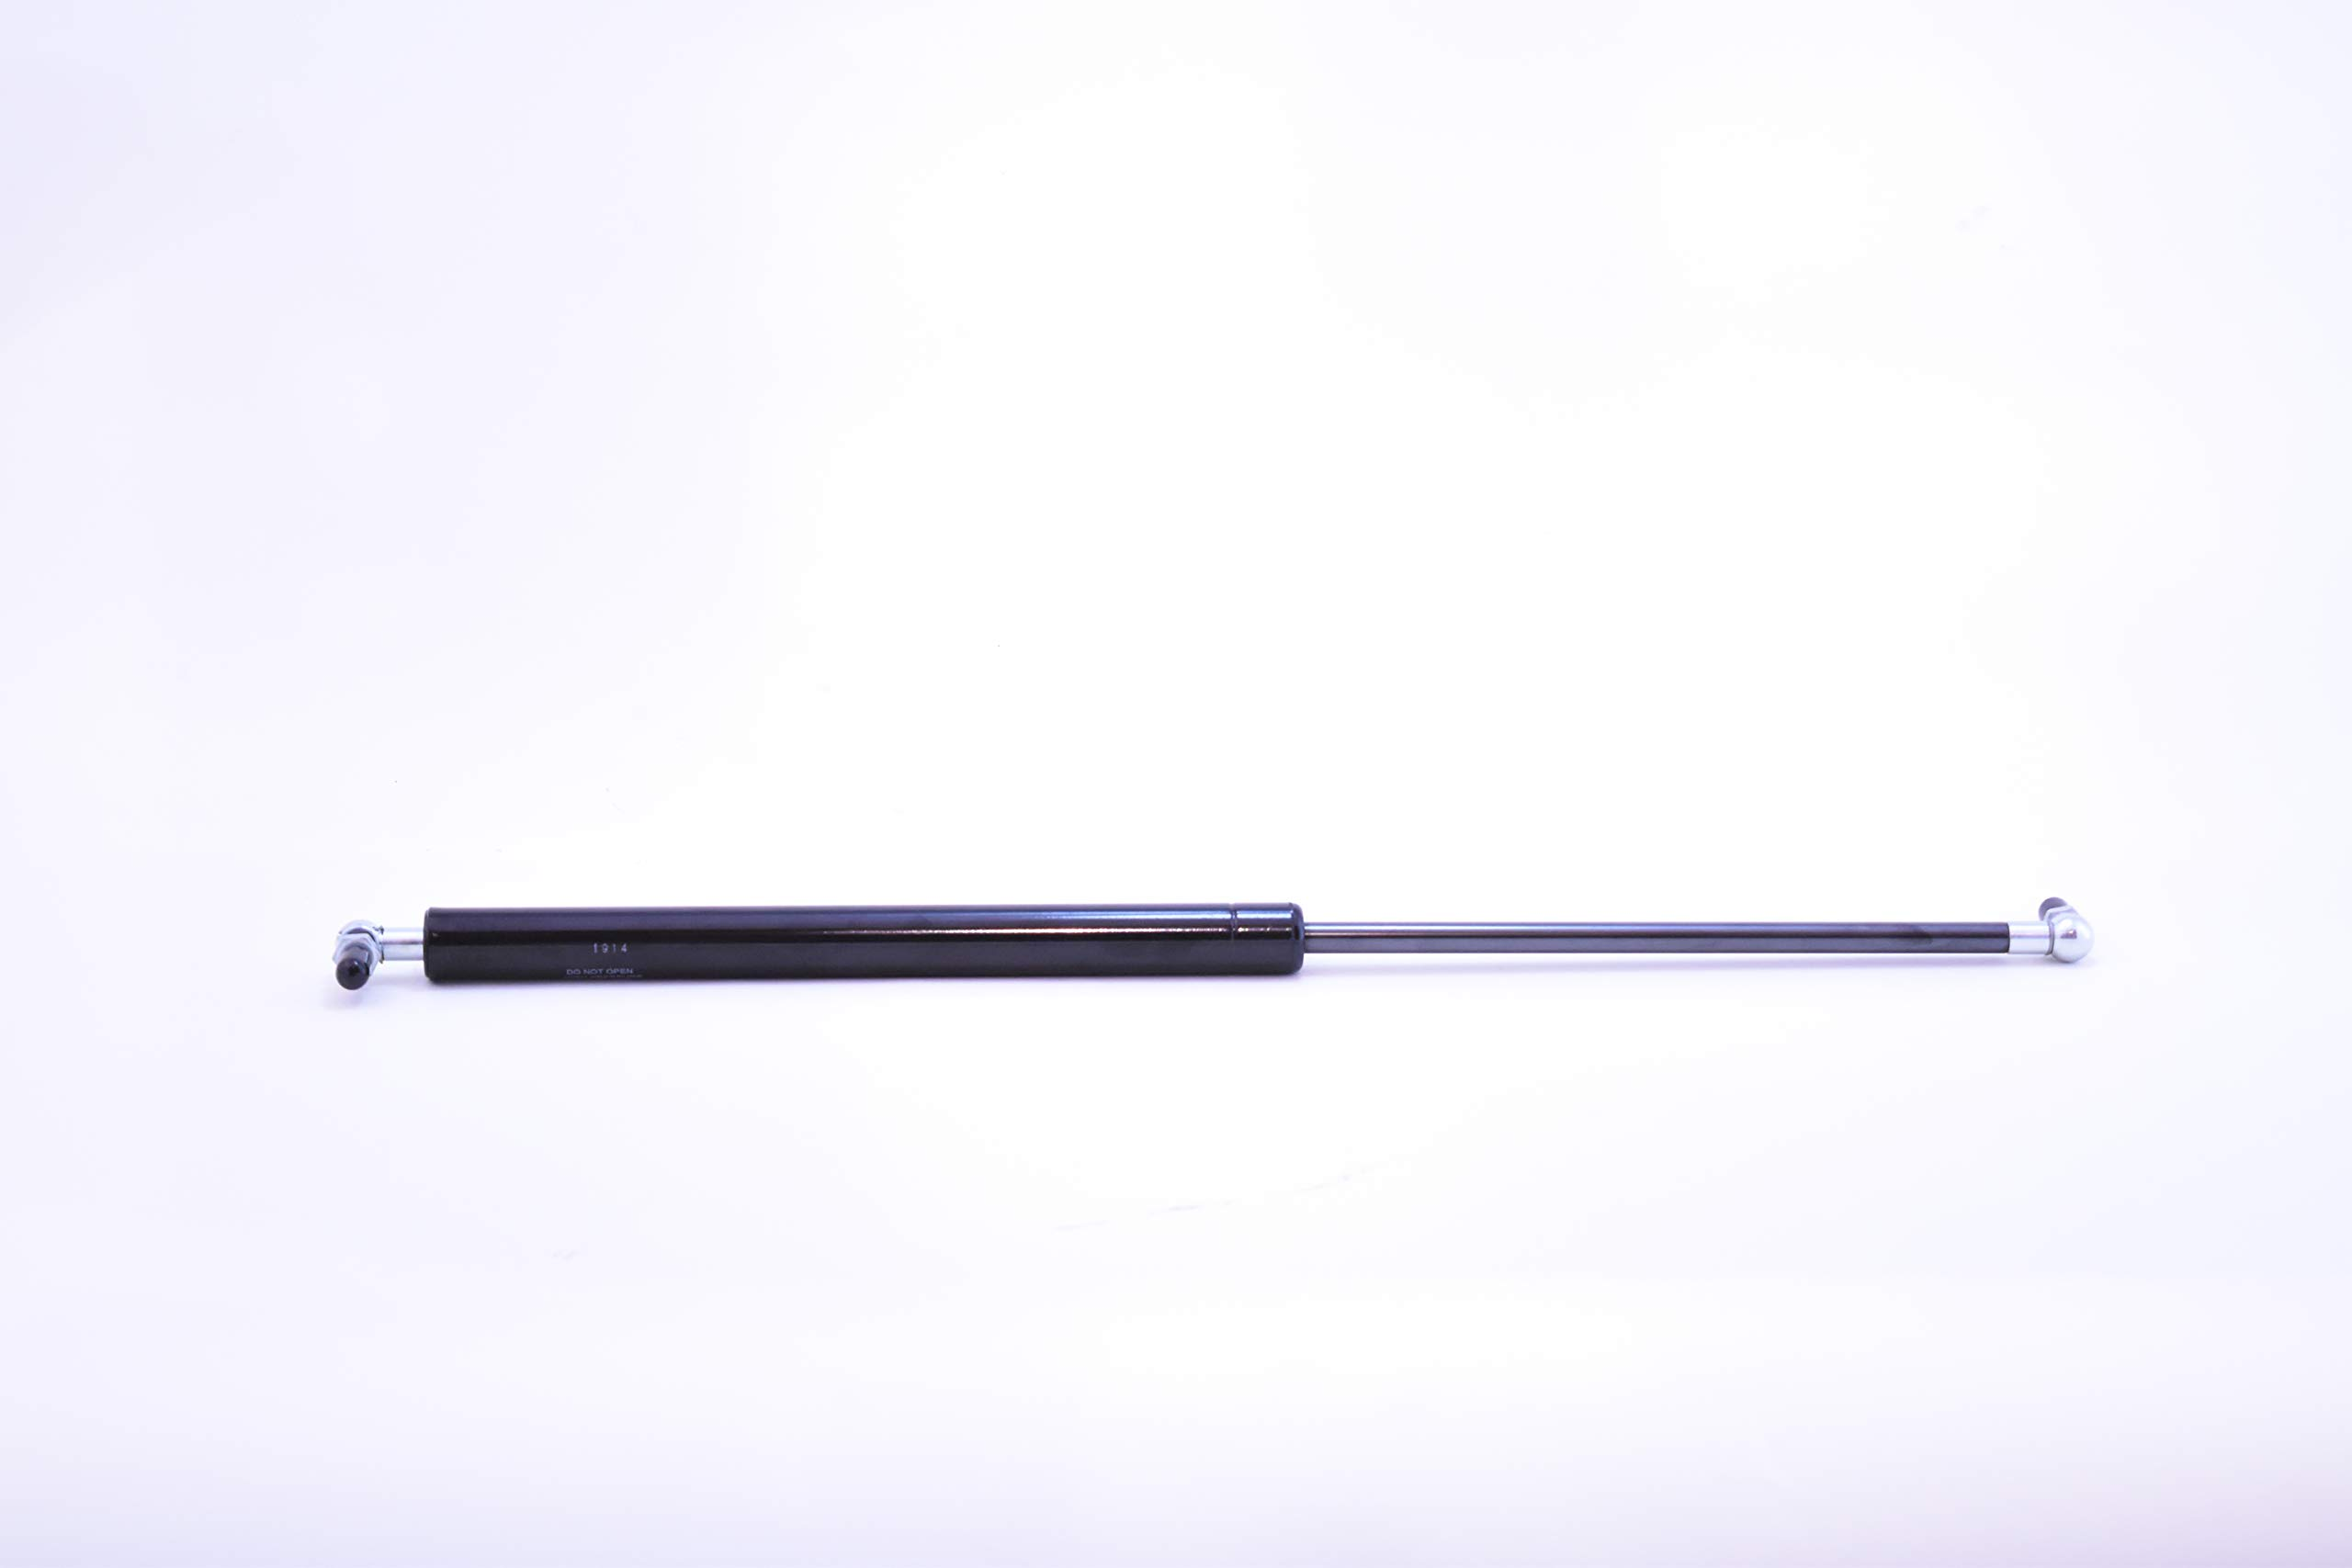 338-018 Gas Spring for Serco Pit Bull Vehicle Restraint by Dockparts.com (Image #1)